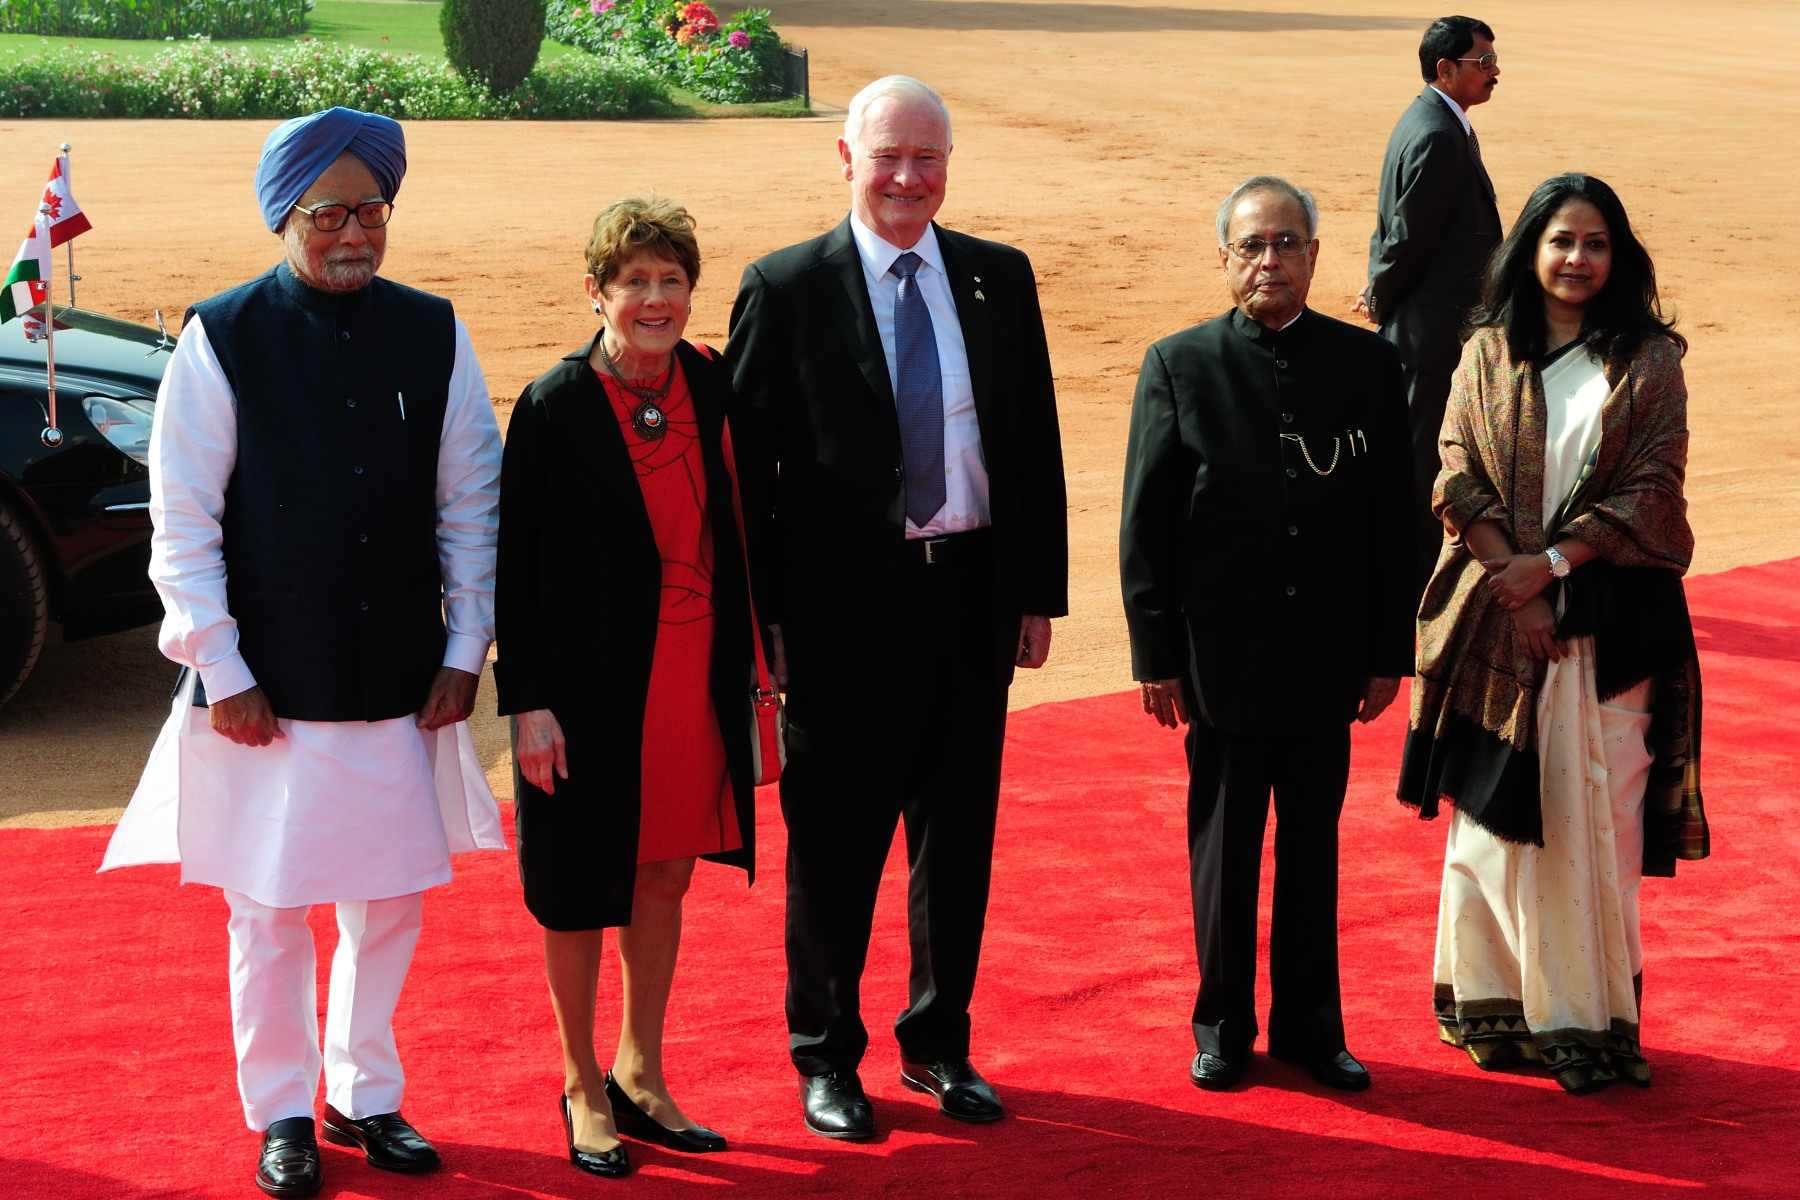 Their Excellencies were welcomed by His Excellency the Honourable Shri Pranab Mukherjee, President of India (right), and His Excellency the Honourable Manmohan Singh, Prime Minister of India (left).